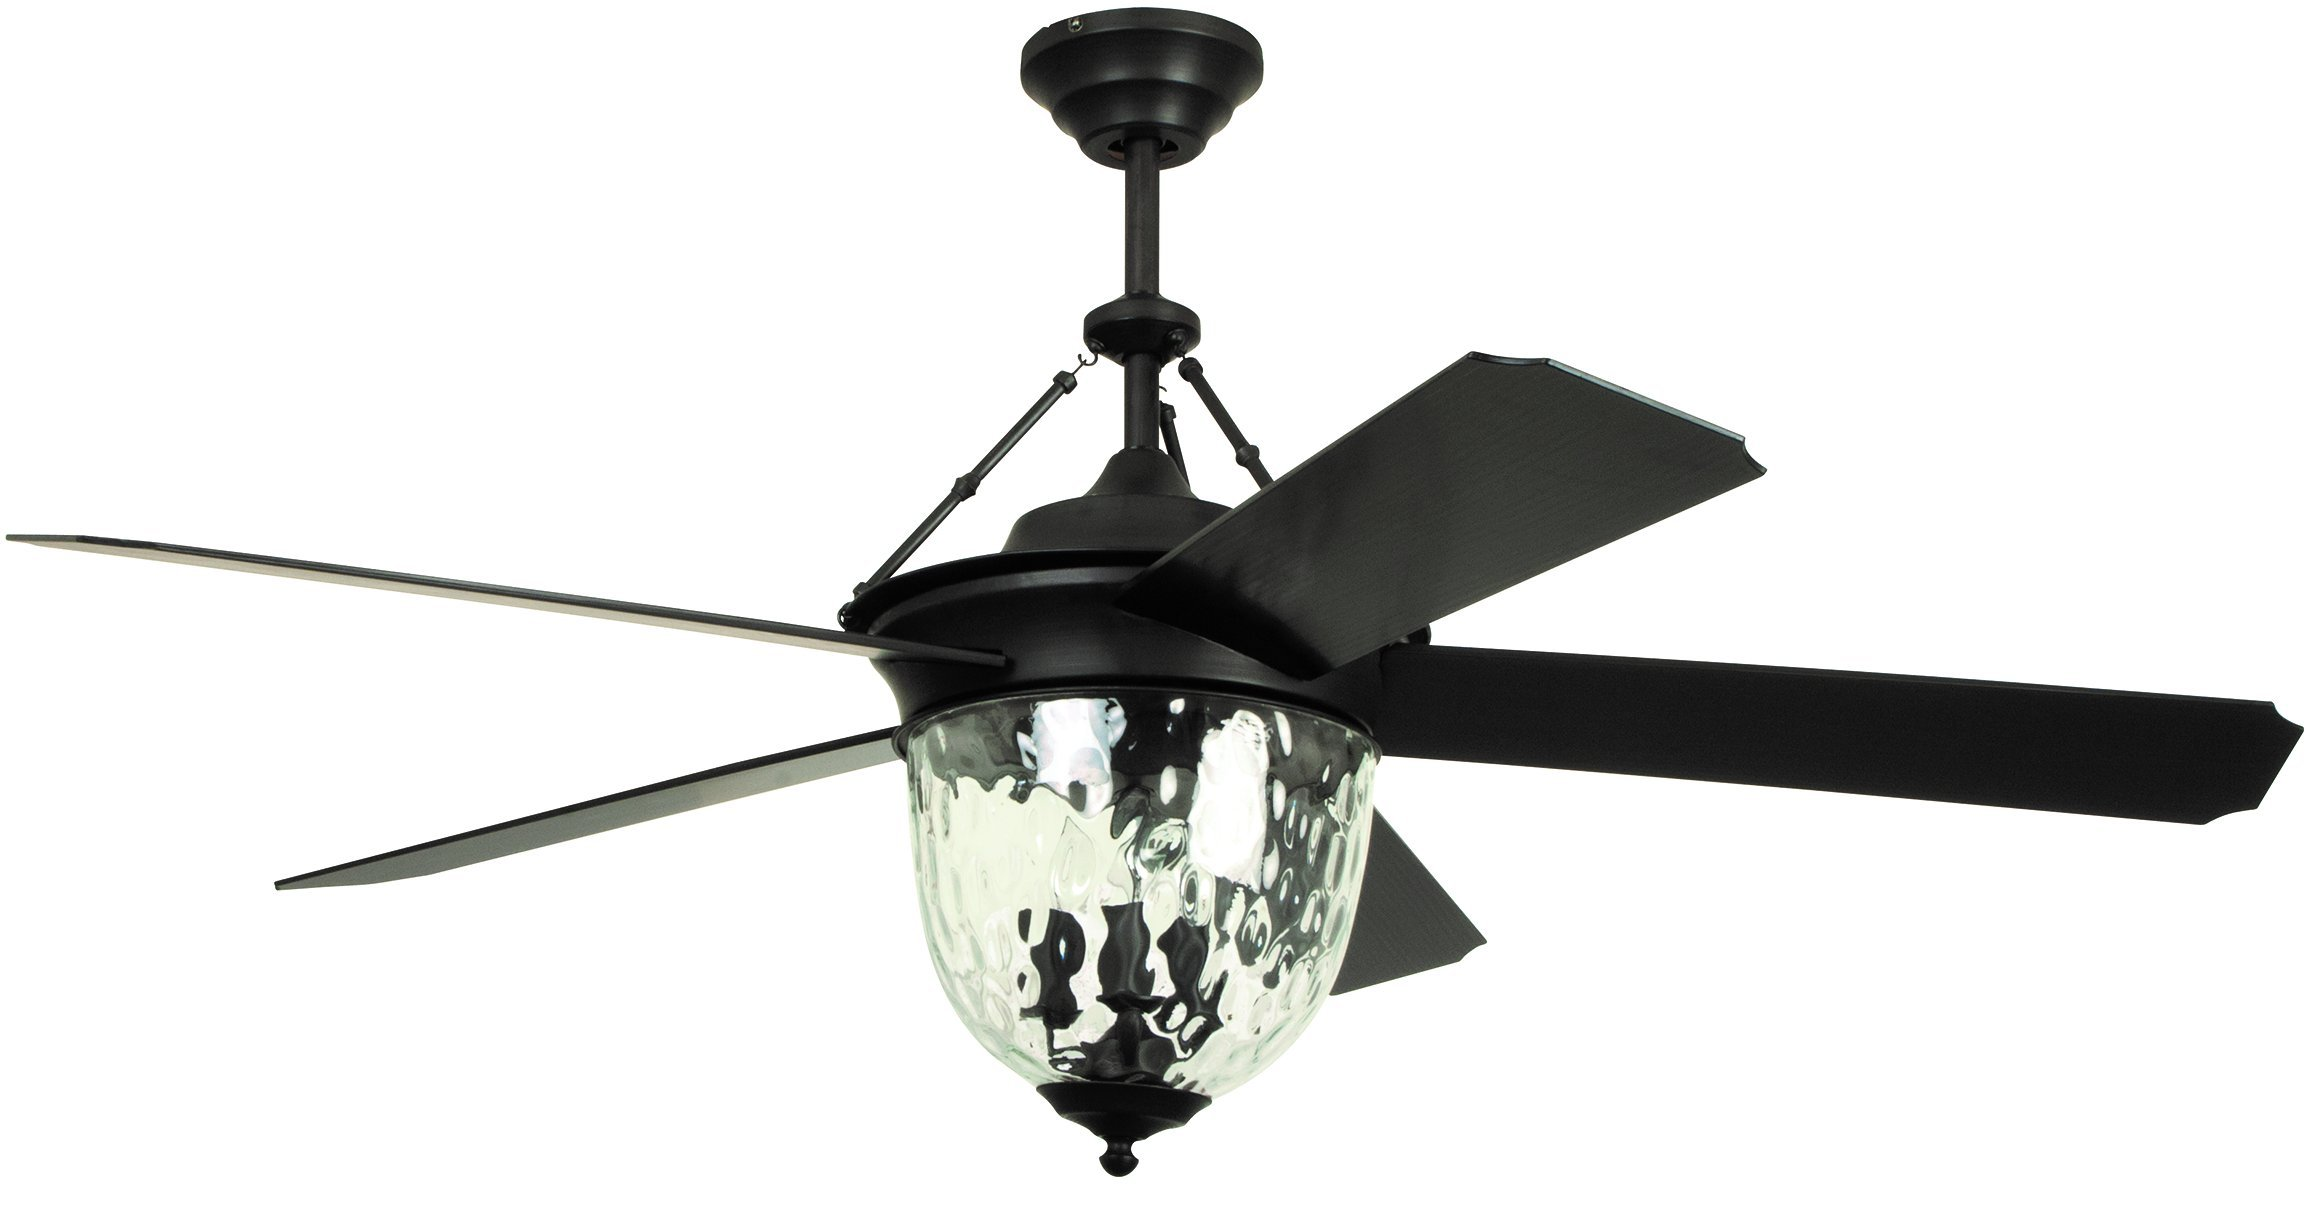 fanimation product ceilings home bronze inch shipping finish free camhaven walnut fan rubbed oil with ceiling overstock garden blades today light cherry